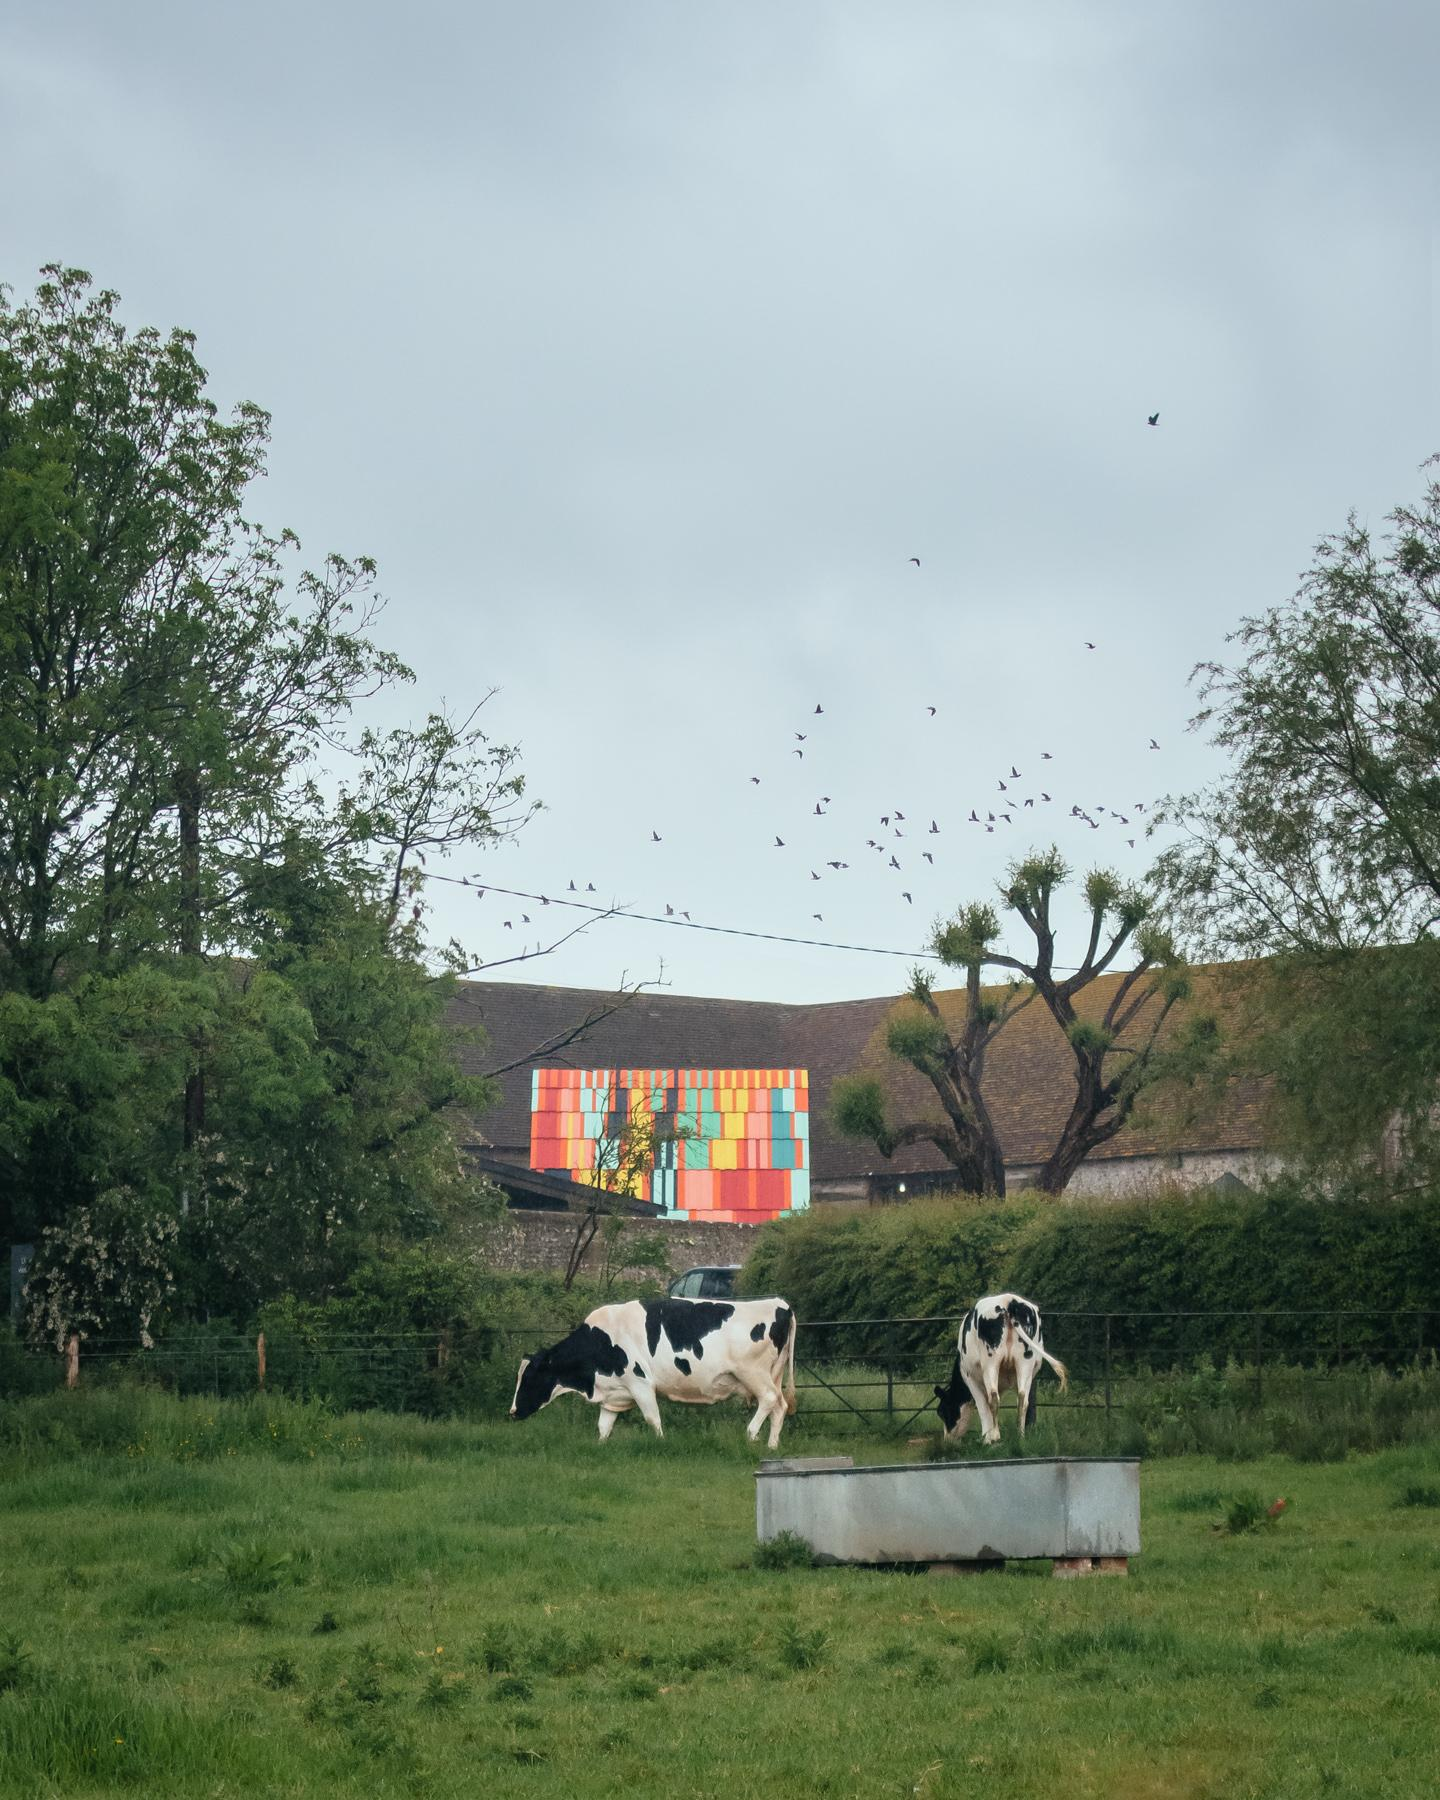 charleston outdoors stage as seen in green rural setting with cows on view